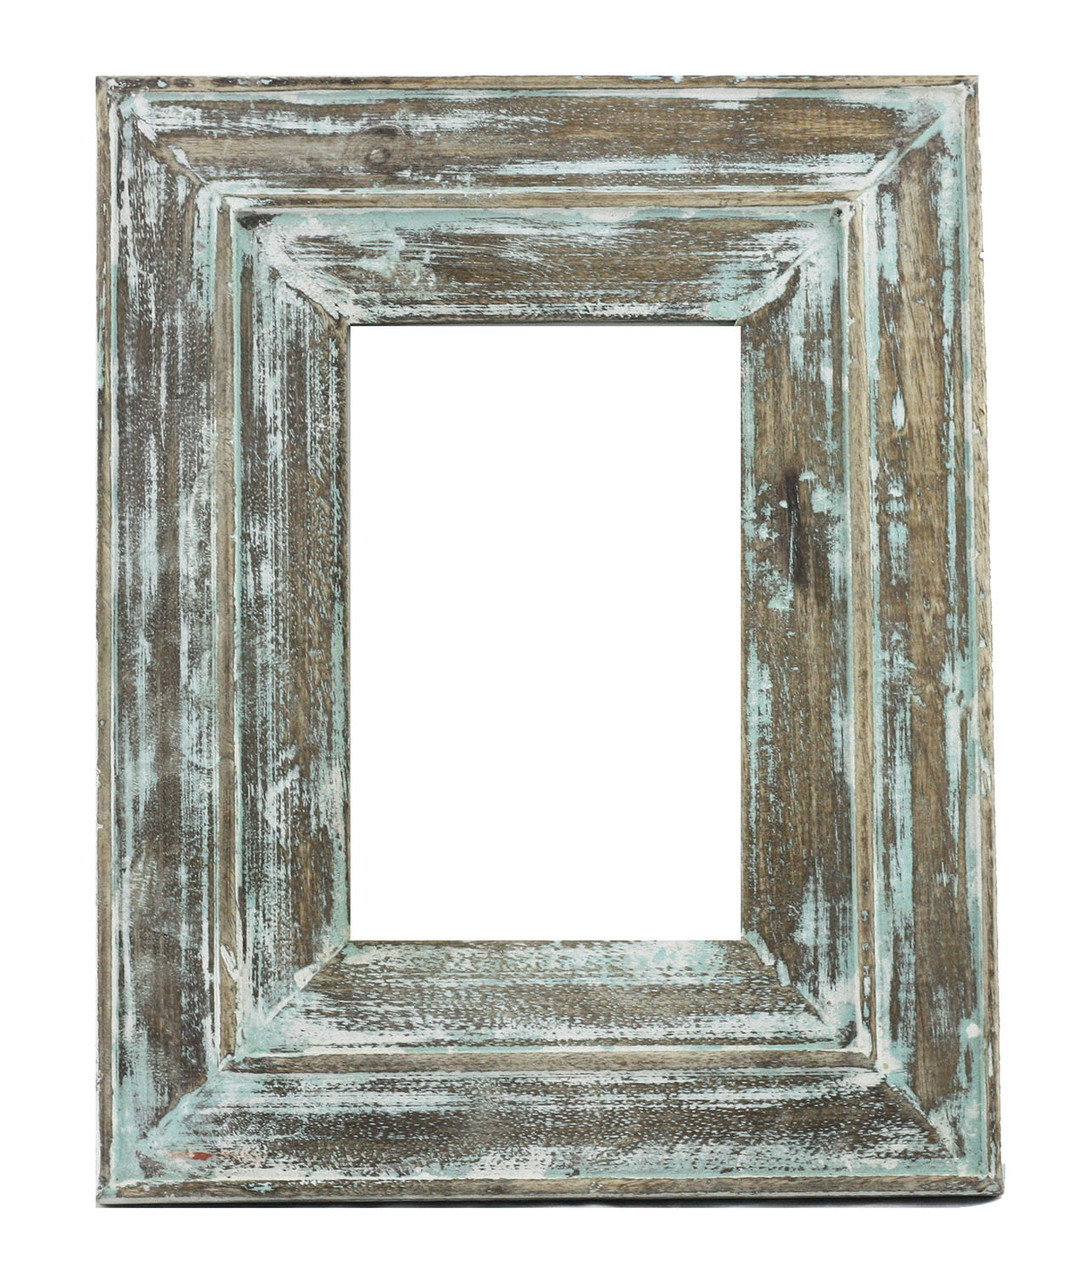 Sea Green Distressed Moudled Photo Frame - Timbergirl